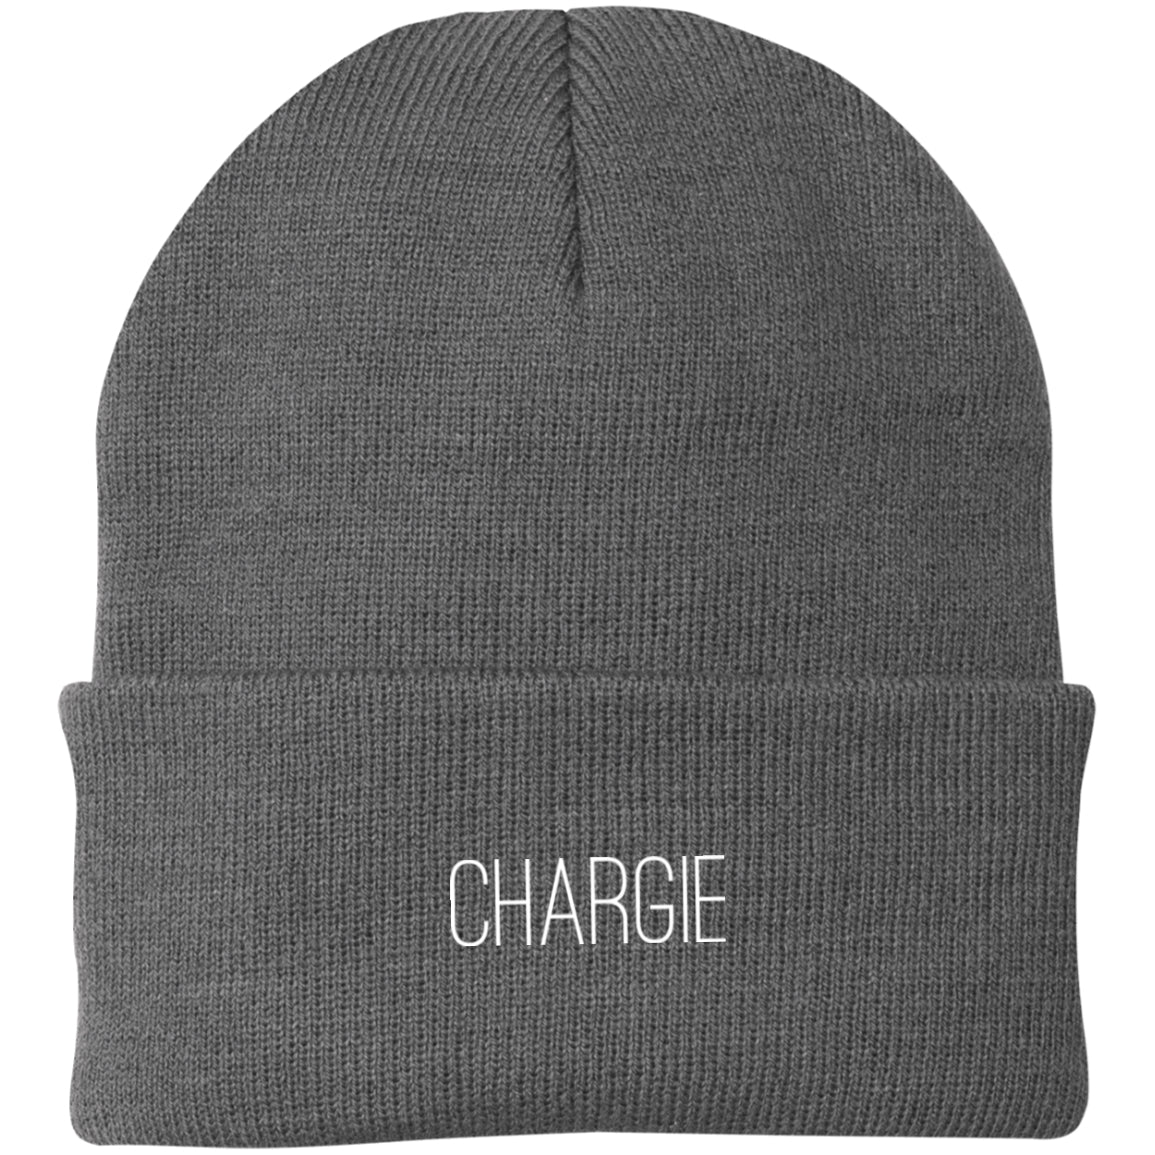 Iconic Chargie Knit Cap - The Unchargeables